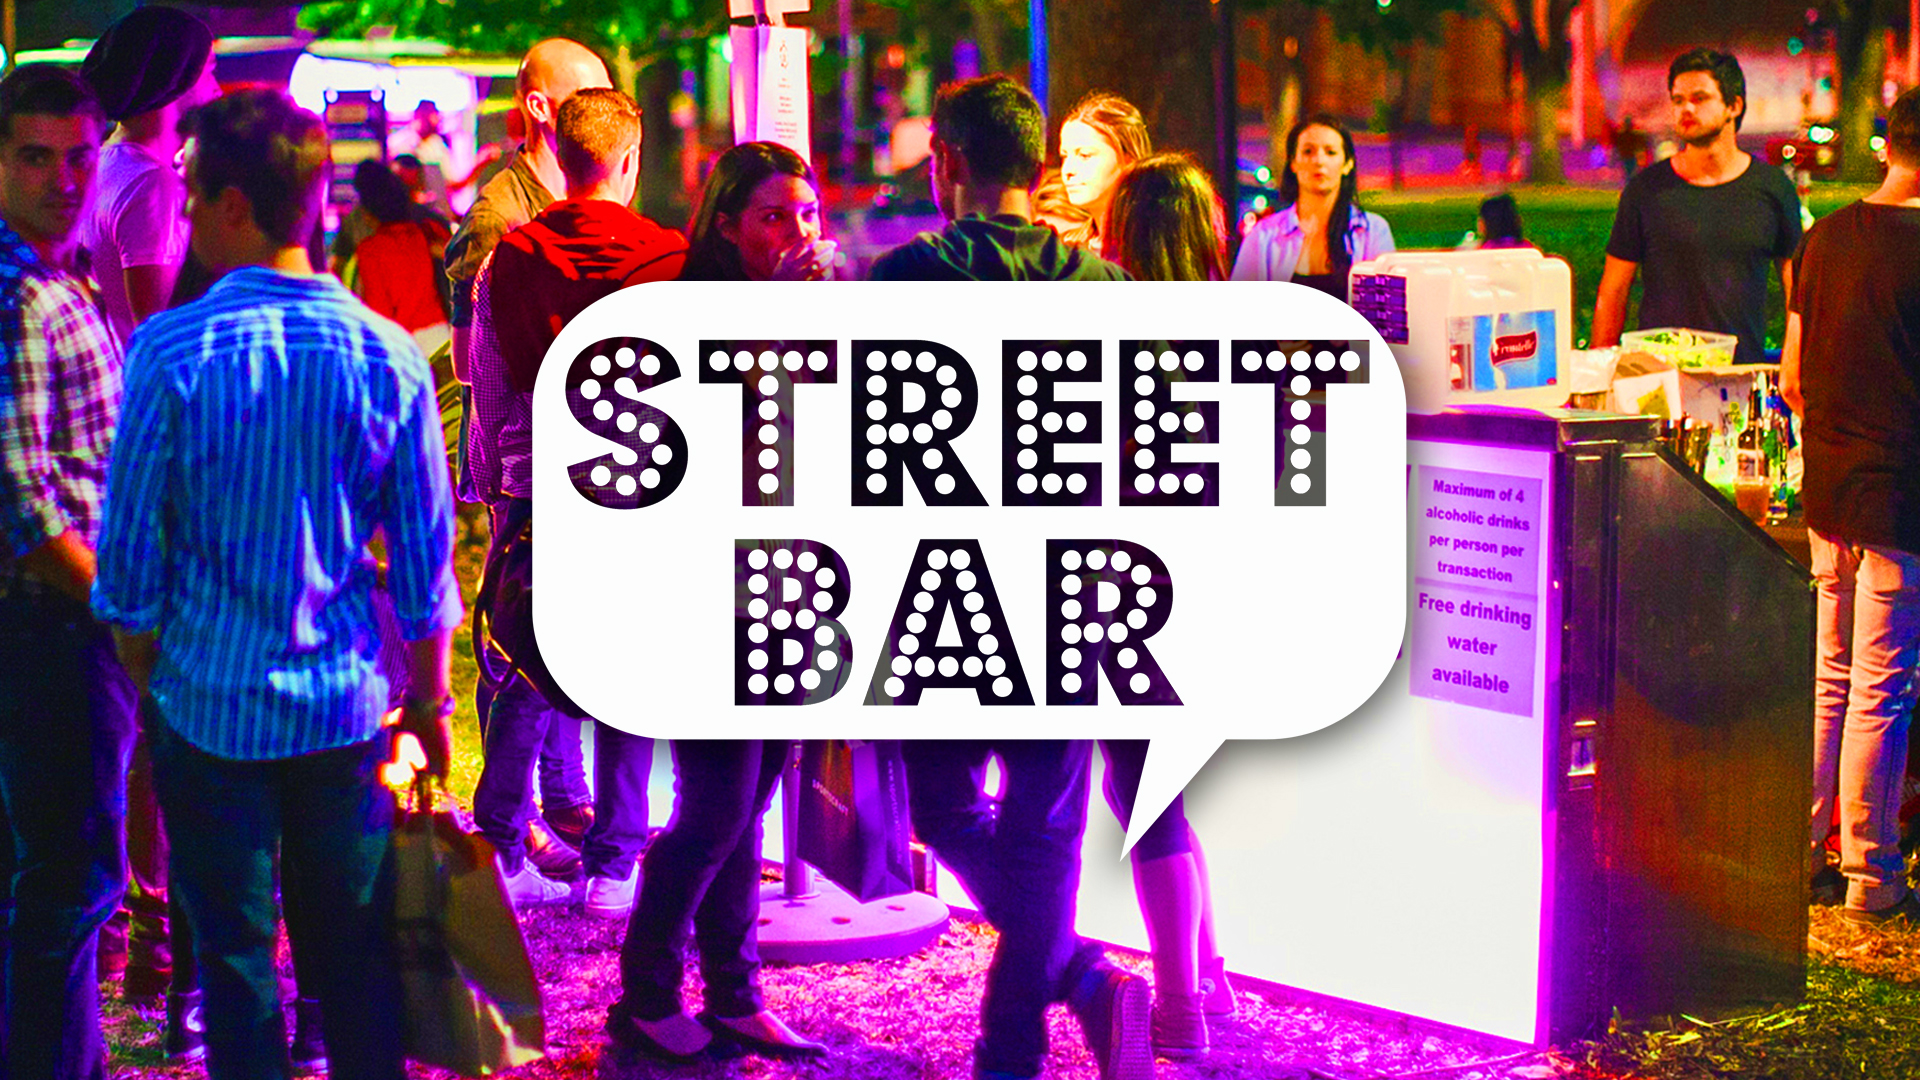 Pop by the Street Bar for ciders, beers, wines and seasonal cocktails while enjoying the eclectic collection of tunes to chill out to. A portion of proceeds from the Bar will be donated to OzHarvest Charity. 1 drink purchase = 1 meal for those in needs.